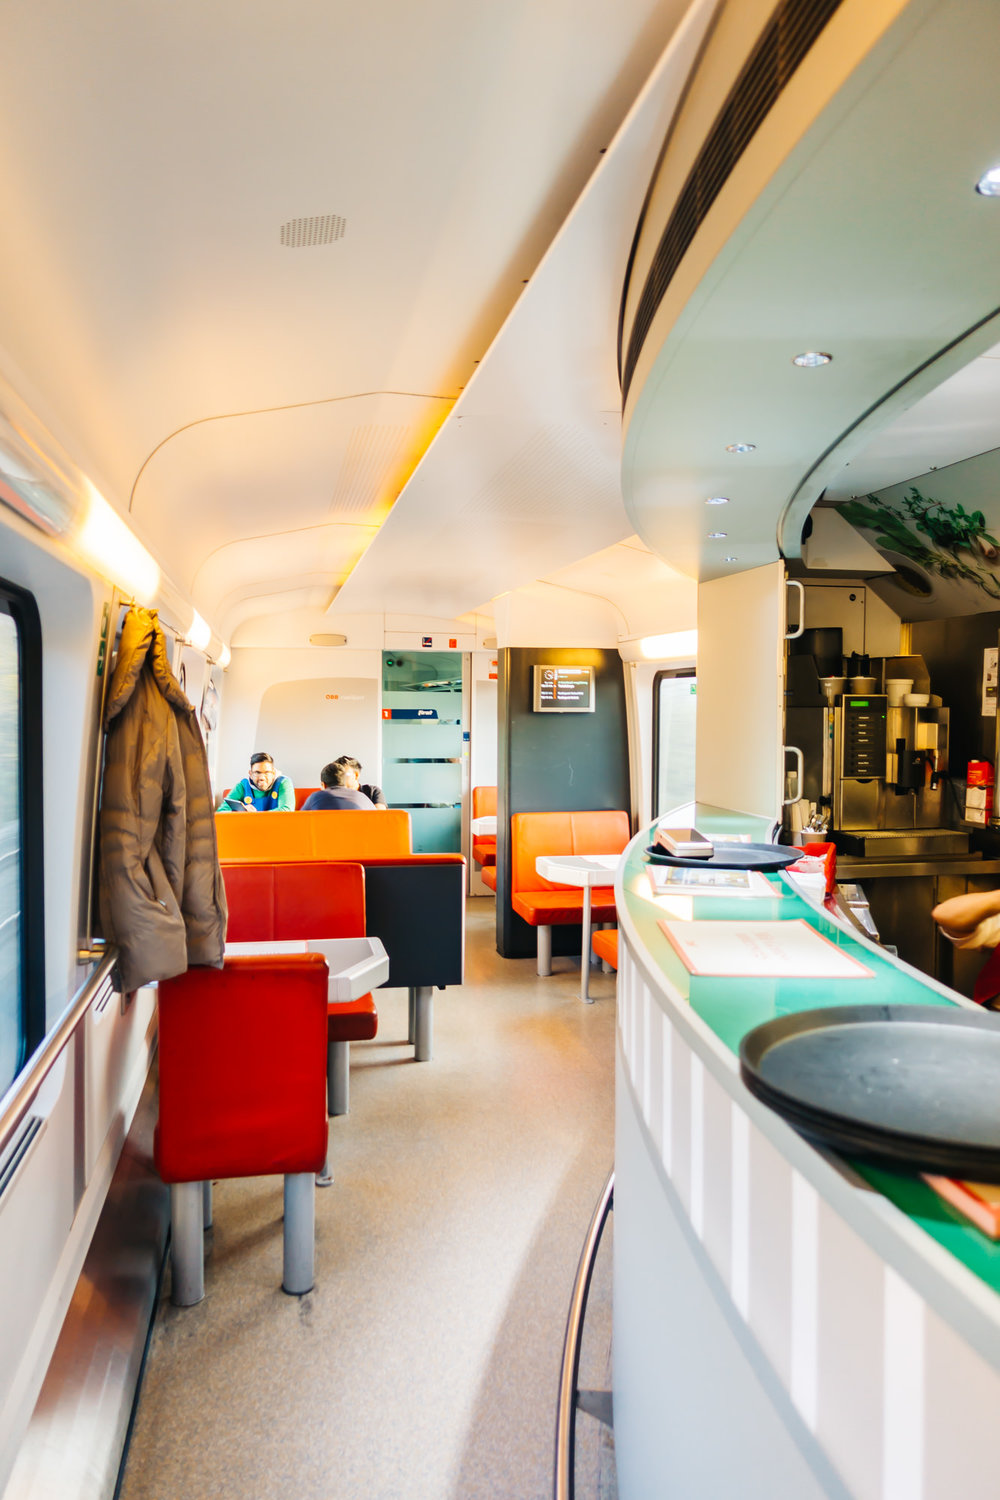 Restaurant inside the train